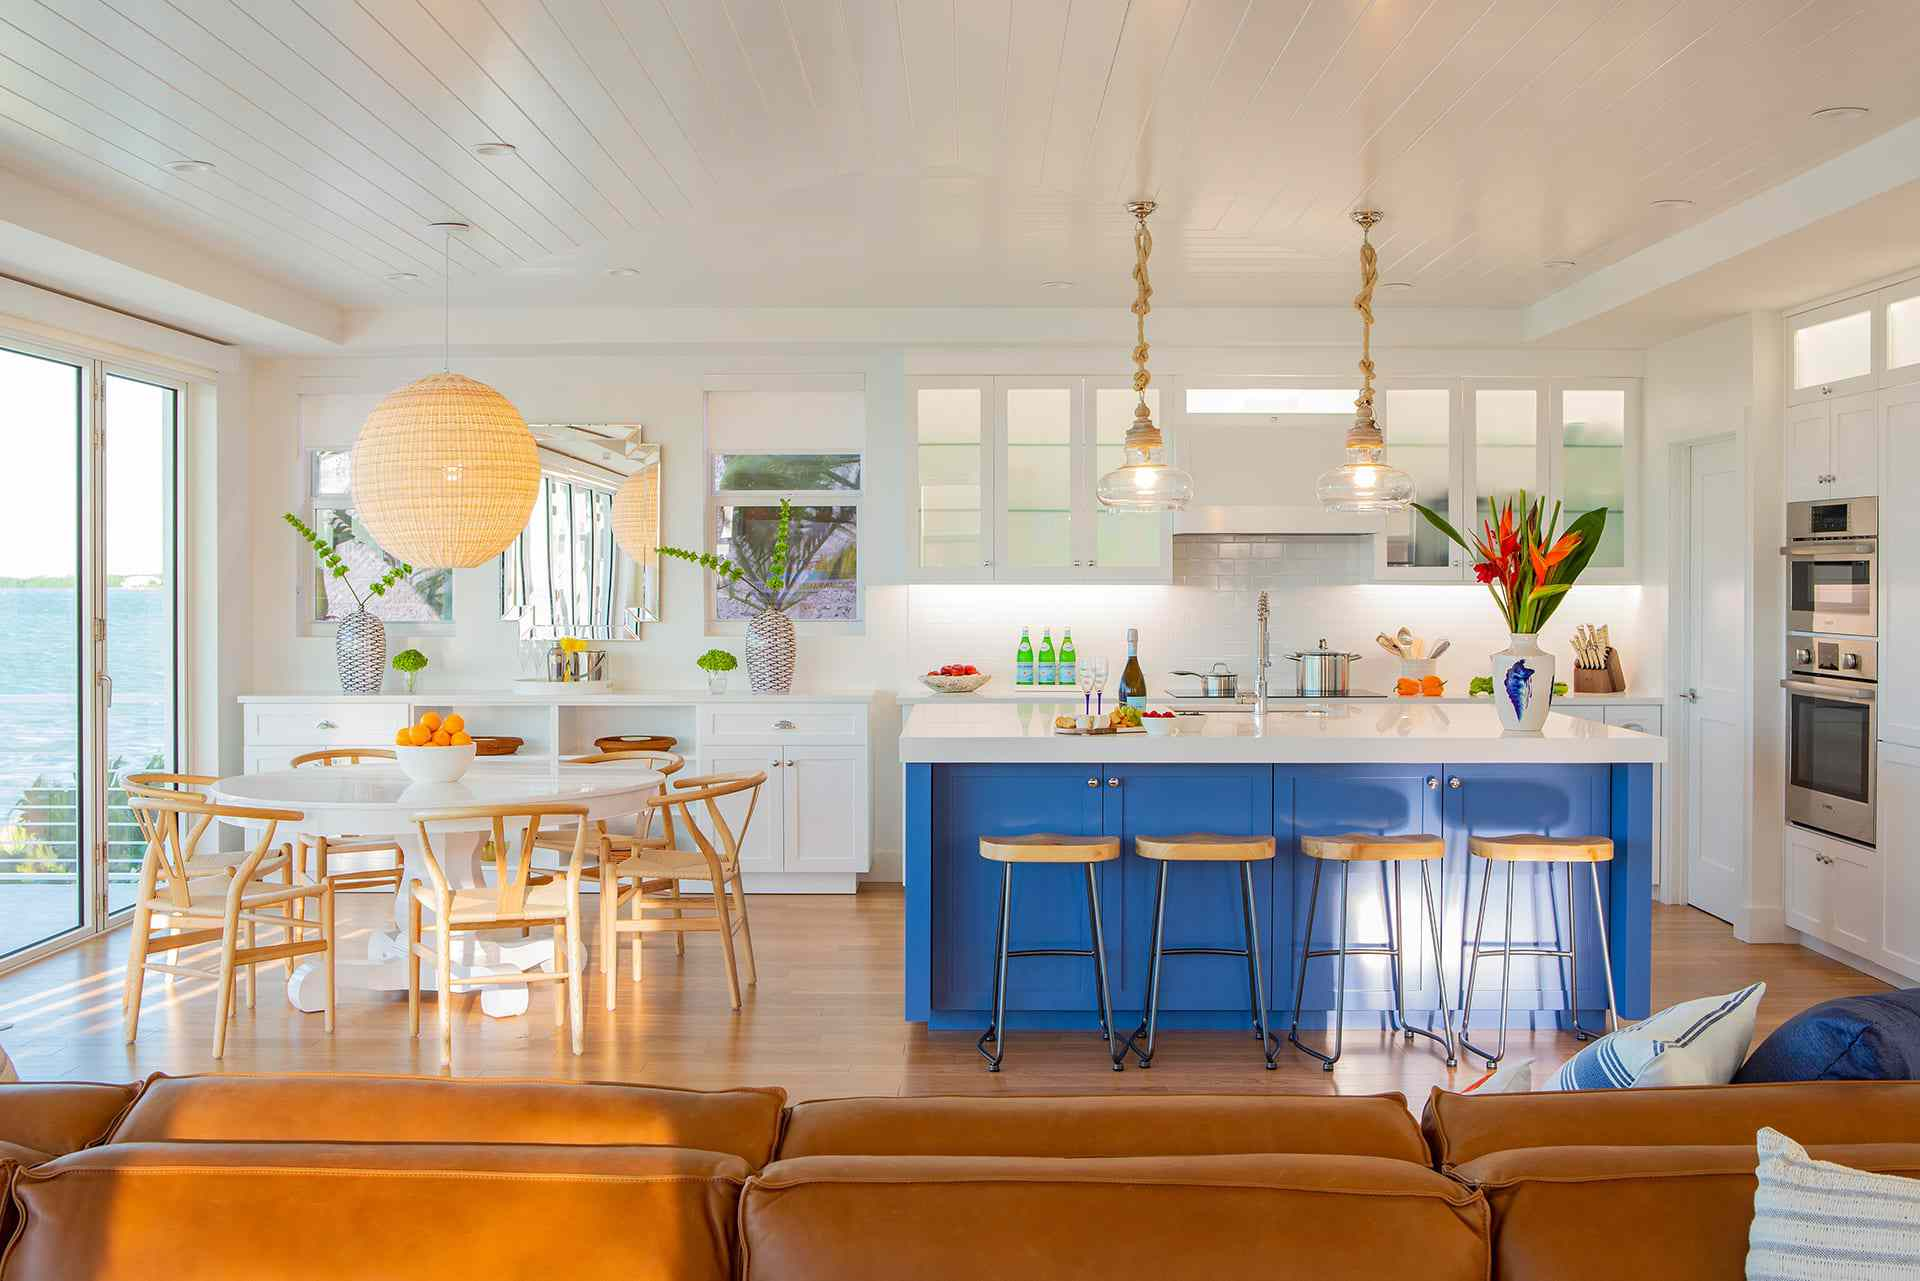 Open layout kitchen with blue island.